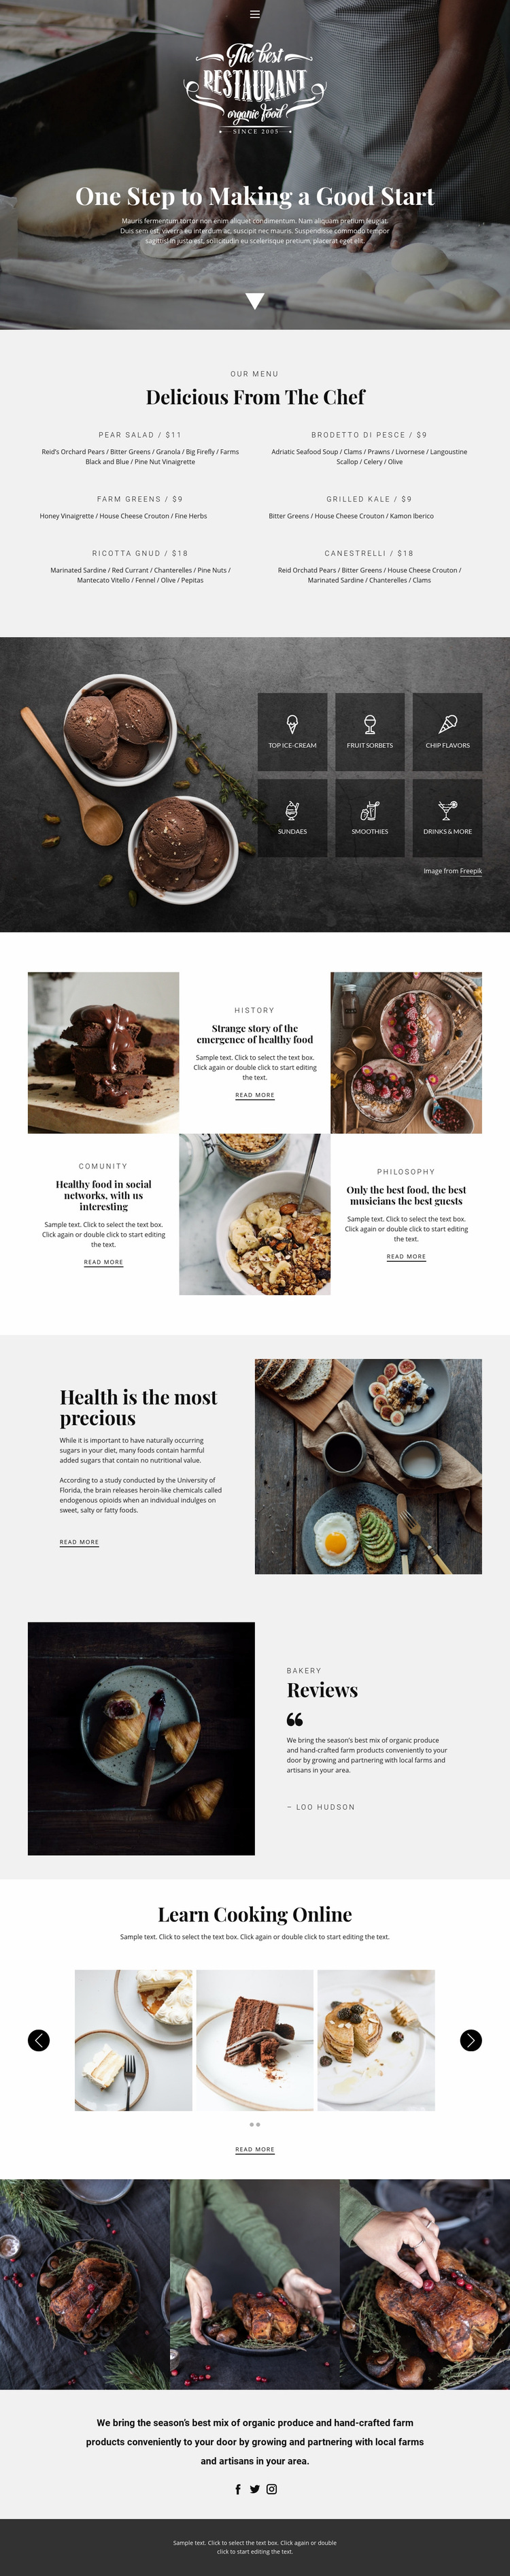 Recipes and cook lessons Web Page Design